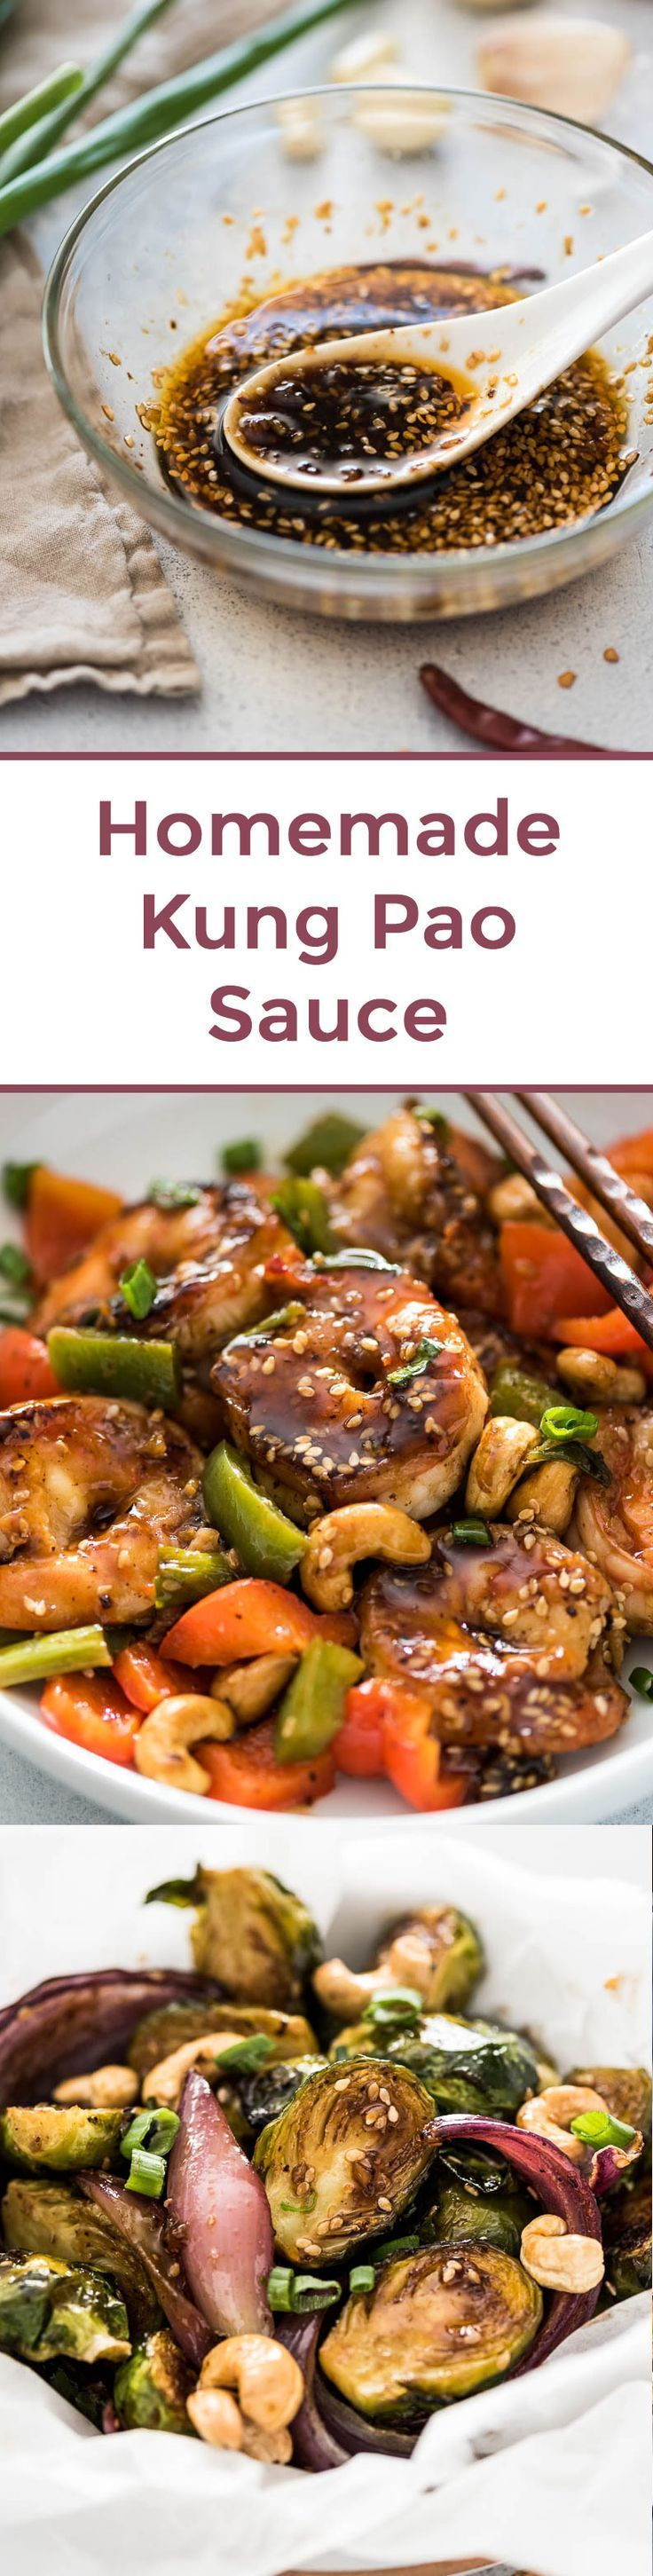 Homemade Kung Pao Sauce - Chinese Sauce | Stir Fry Sauce | Chinese Food | Chinese Recipes | Asian sauce